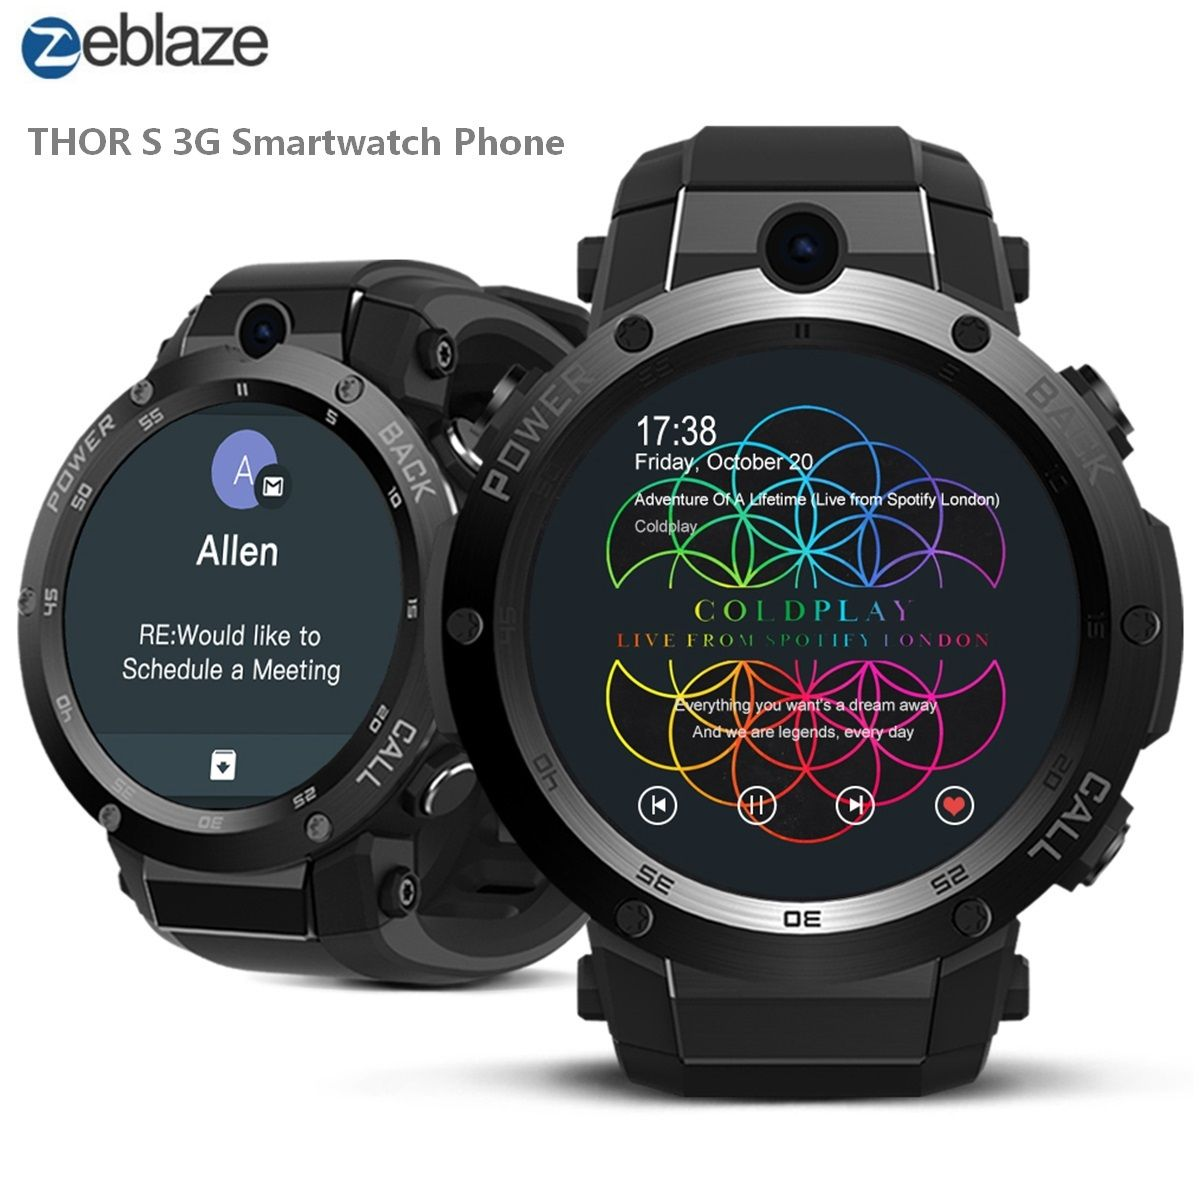 Zeblaze THOR S 3G Smartwatch Phone Android 5.1 1.39 inch MTK6580 1.3GHz Quad Core 16GB ROM 5.0MP Camera Bluetooth Wristband